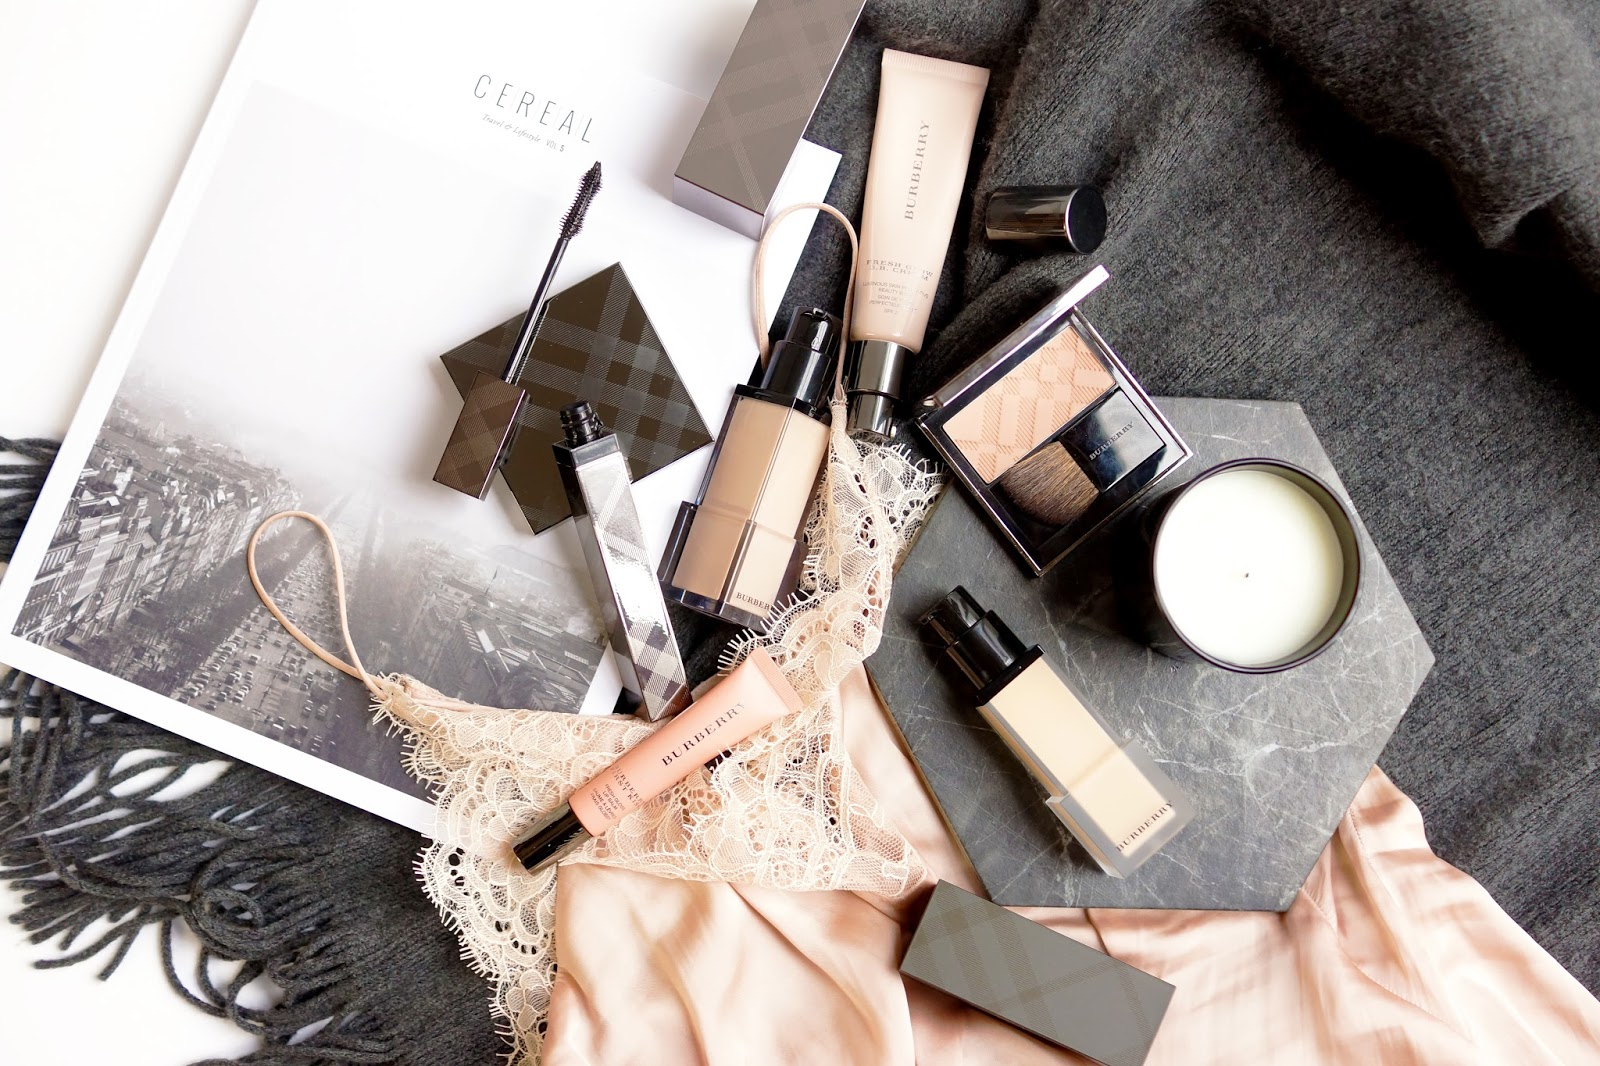 burberry-beauty-best-favourites-flatlay-fashion-makeup-photography-blog